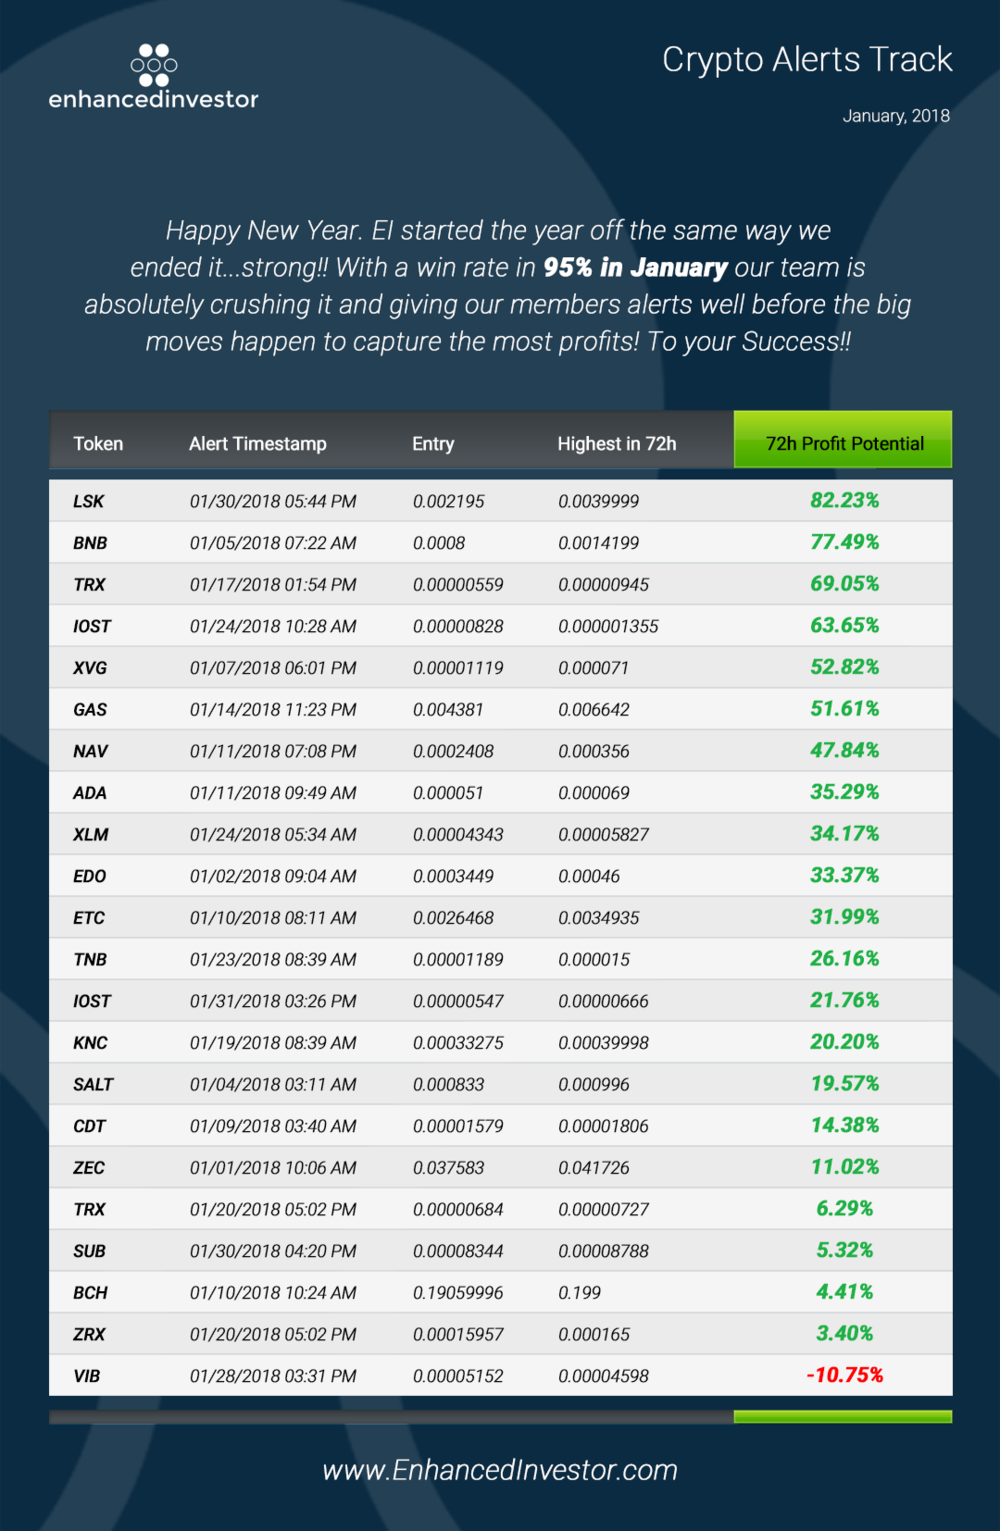 This the maximum profit within 72 hours of the long or short alert.